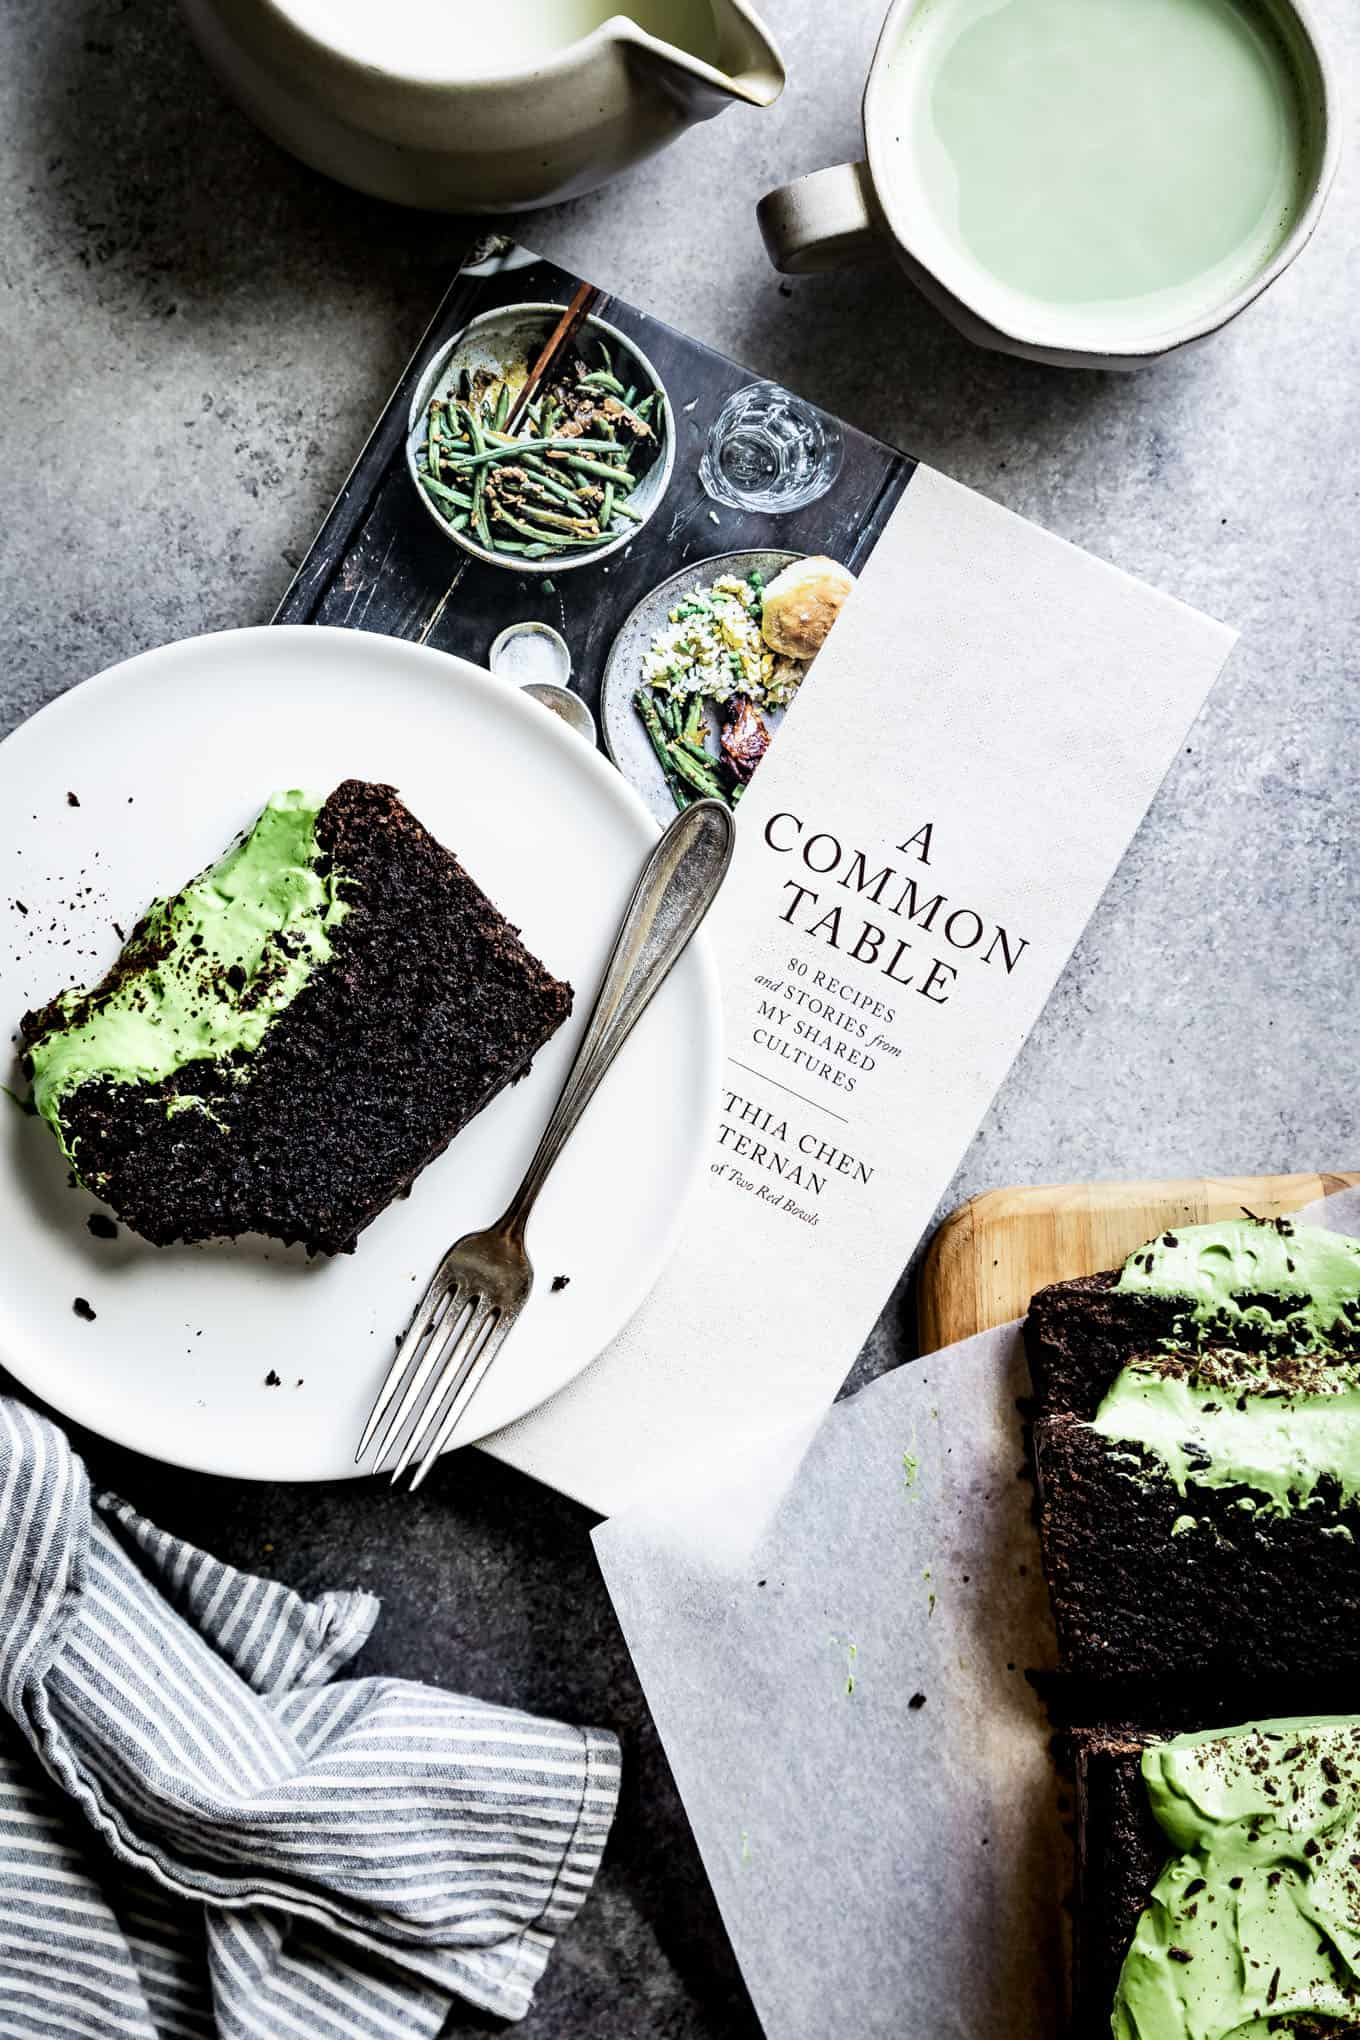 Chocolate Black Sesame Dessert Cake with Matcha Frosting